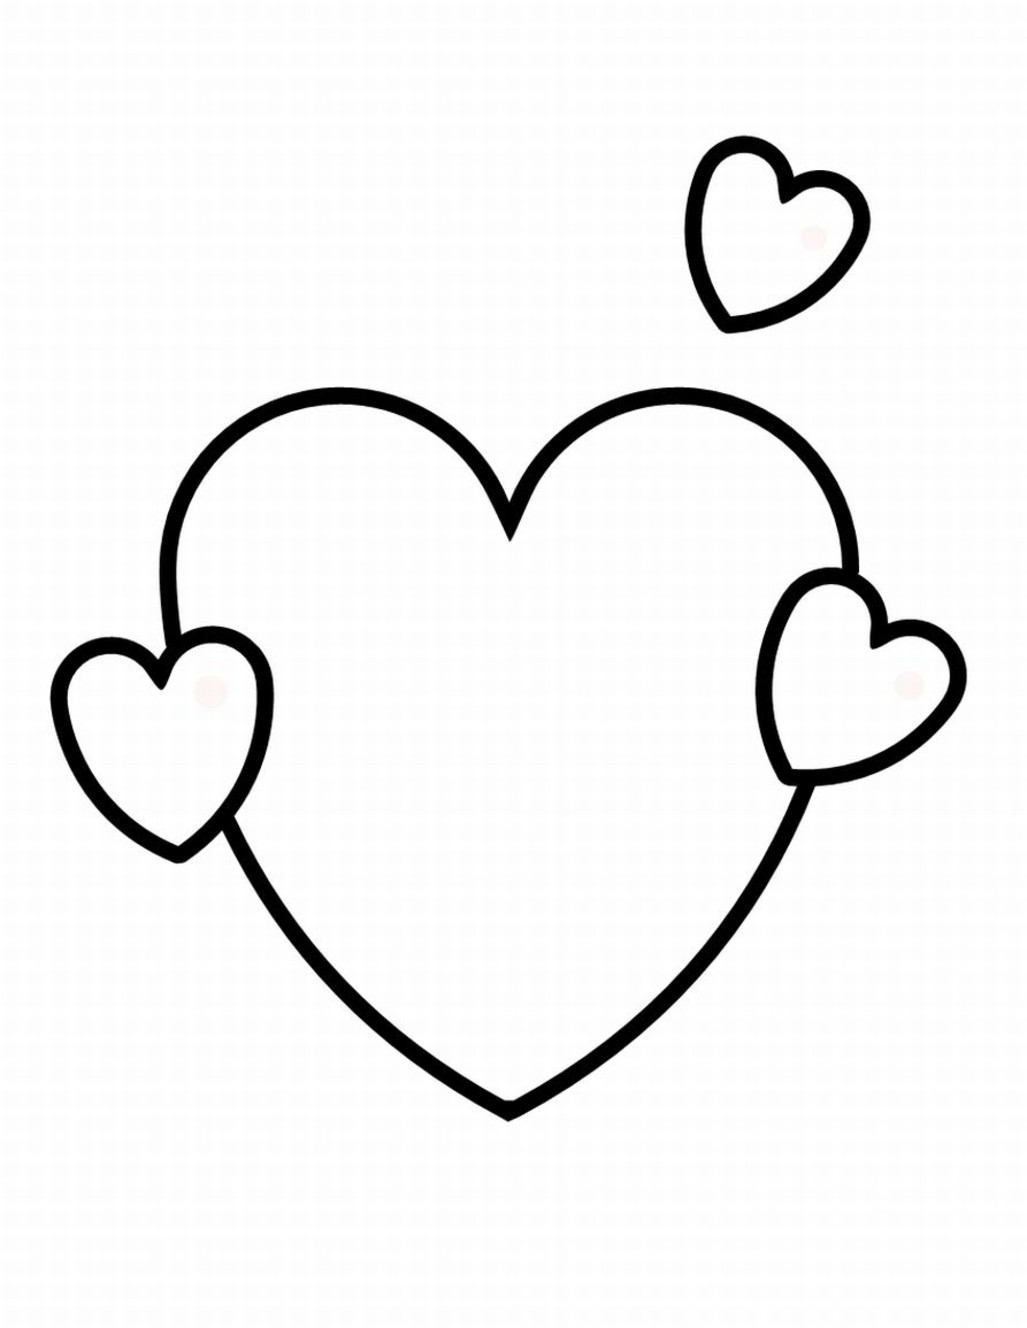 Now Valentine Hearts to Color Unique Heart Sheet Free Printable Collection Of I Love You Free Valentines S0189 Coloring Pages Printable Collection